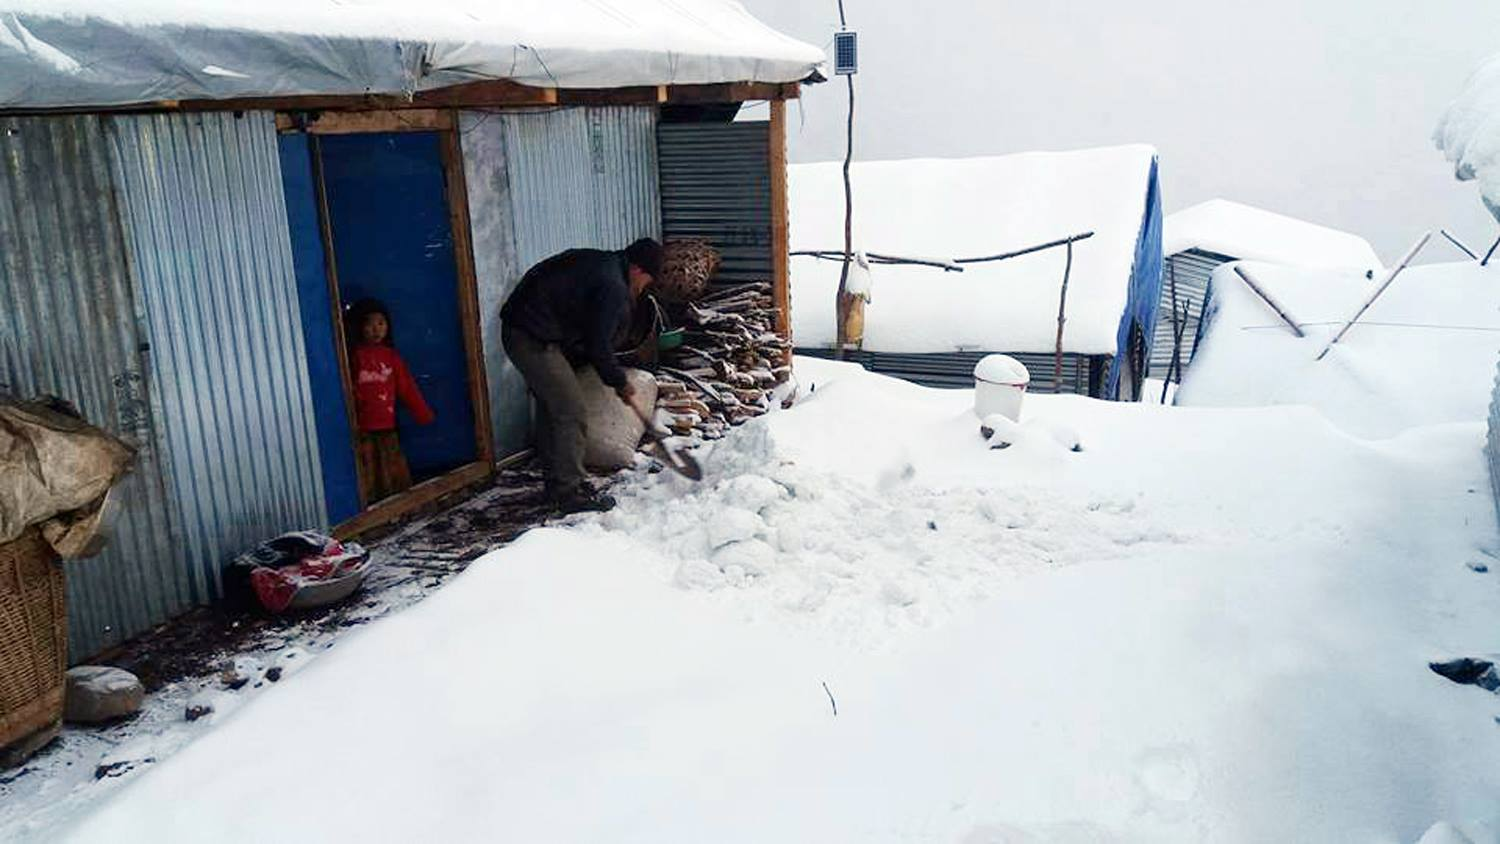 A man clears snow outside his temporary shelter in Barpak, the epicentre of April earthquake, on Saturday. Pic: RSS https://t.co/62uE1FtDTi